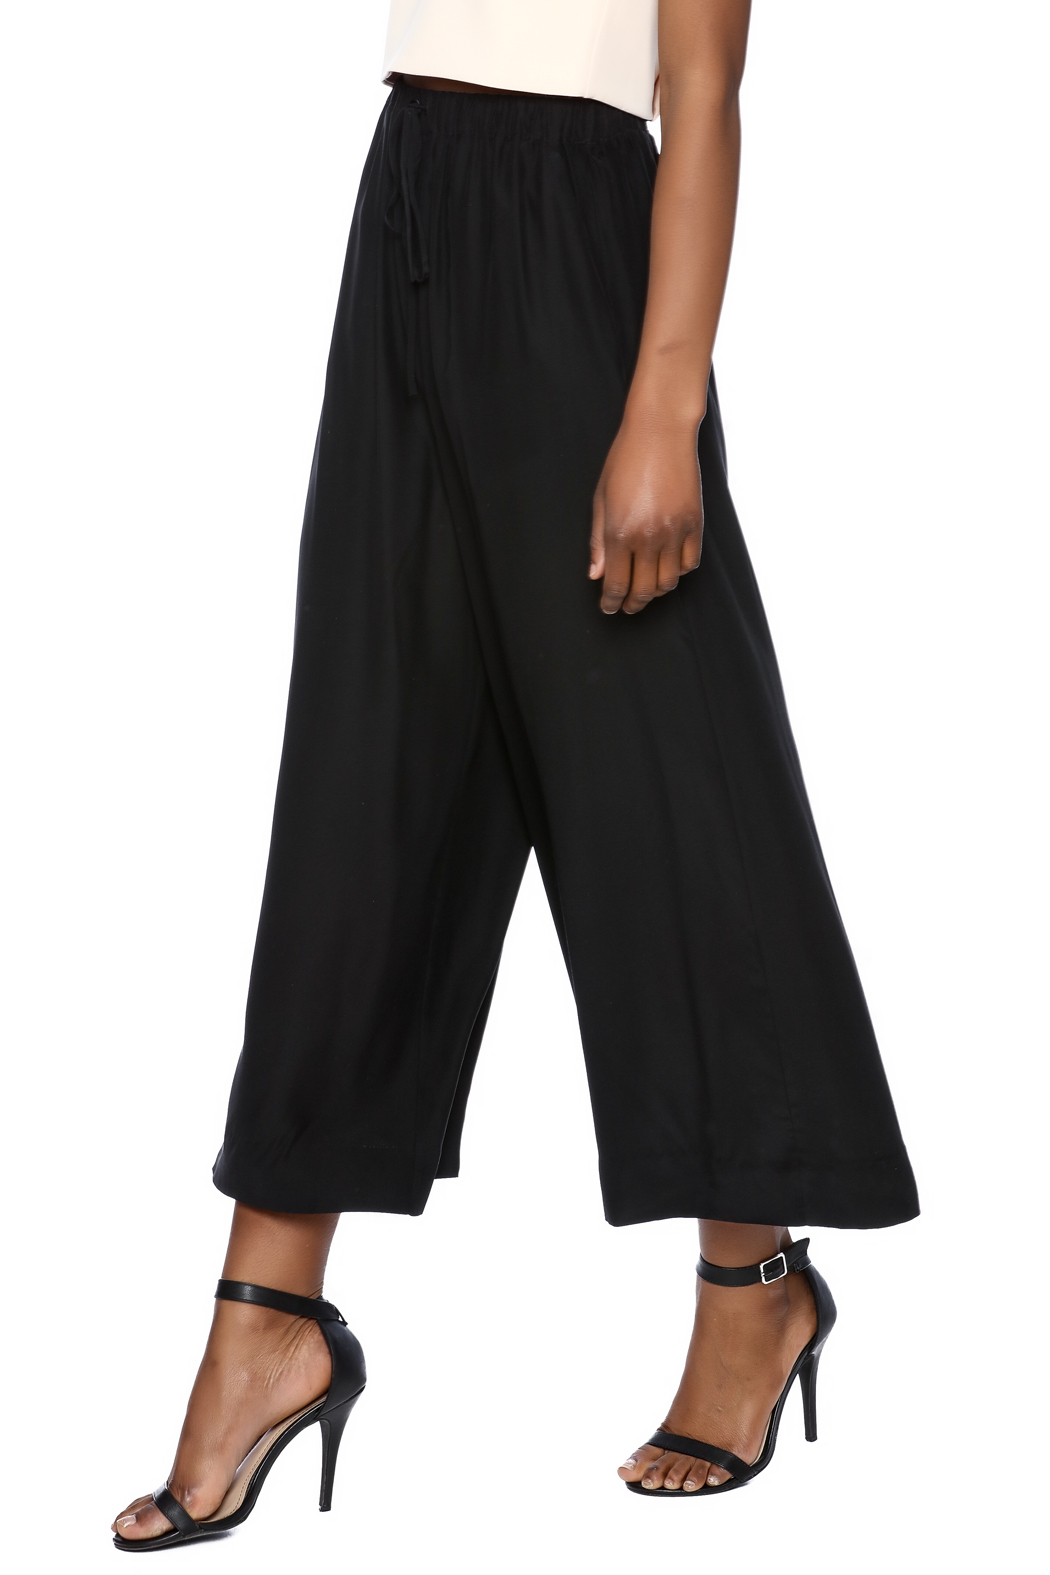 Elizabeth & James Black Silk Pant from Florida by Rouze ...